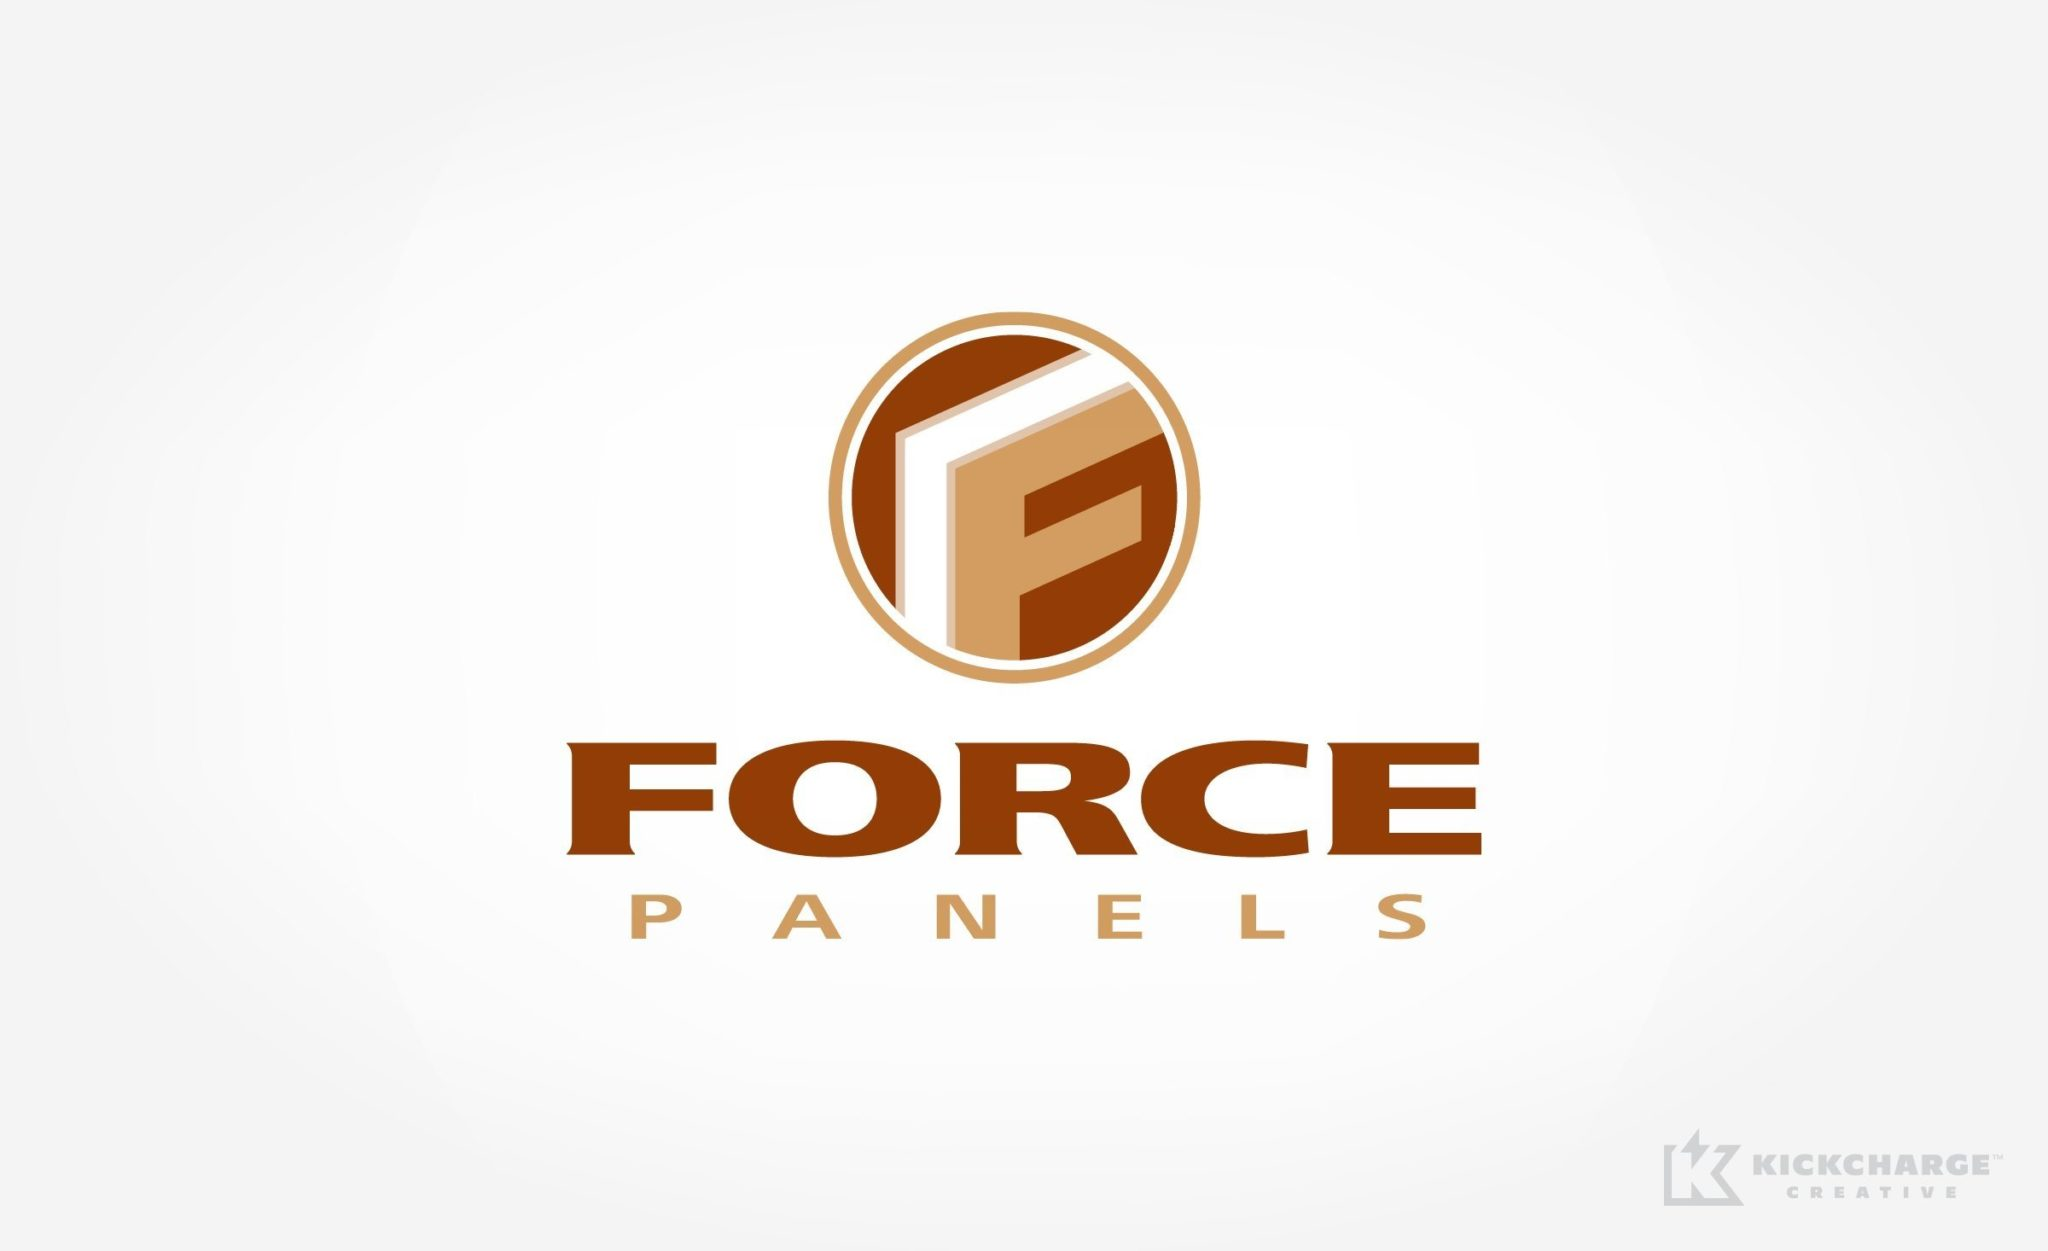 Force Panels